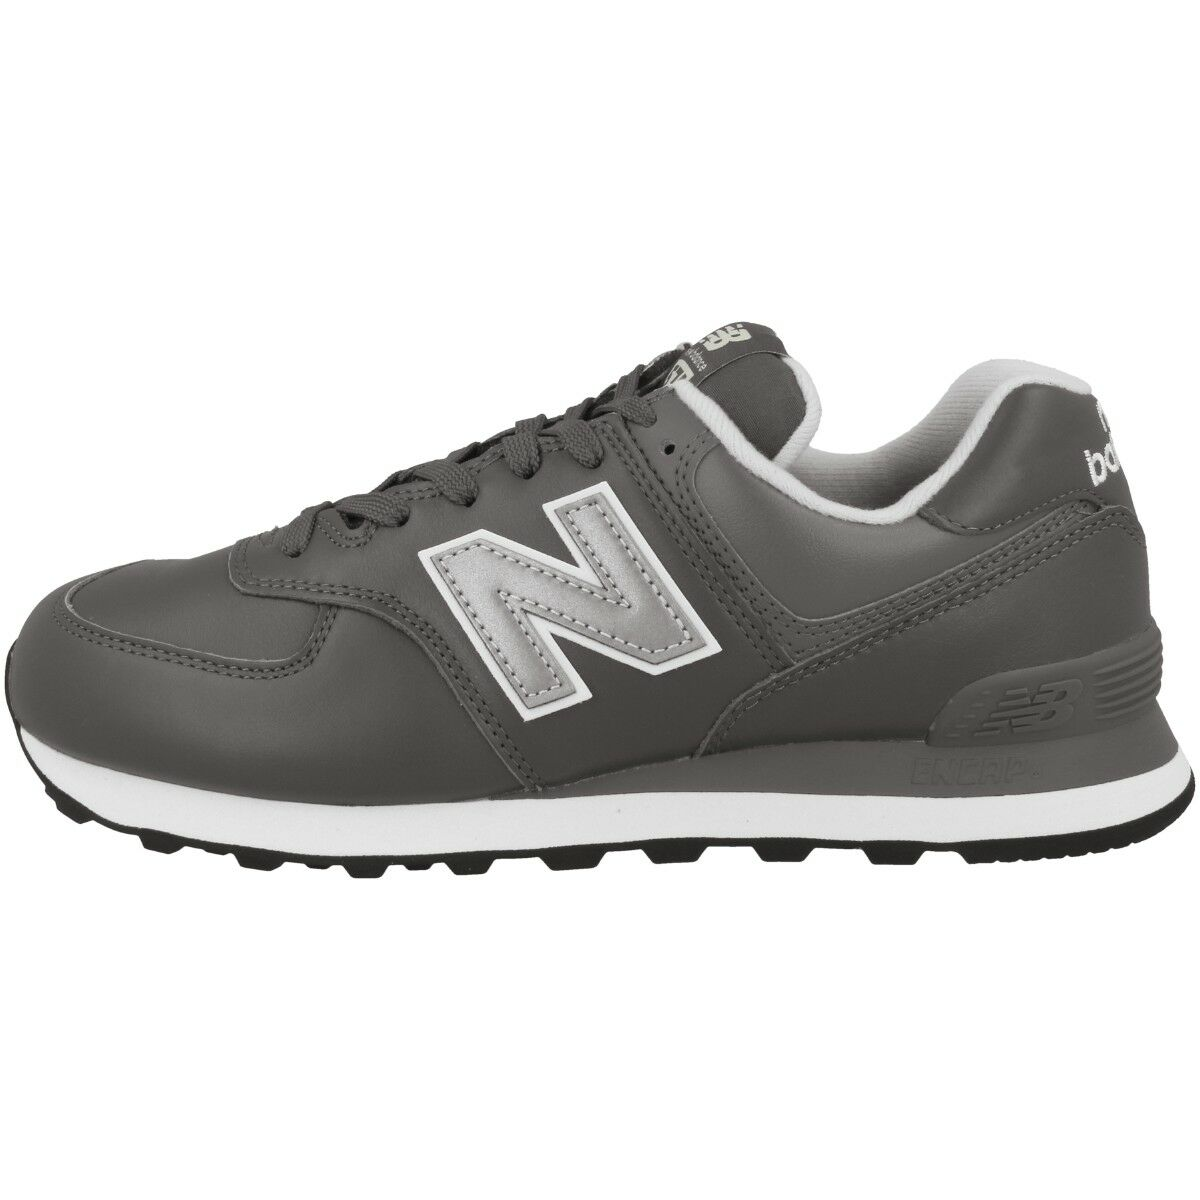 New Balance ML 574 LPC Schuhe Sport Freizeit Retro Sneaker castle rock ML574LPC